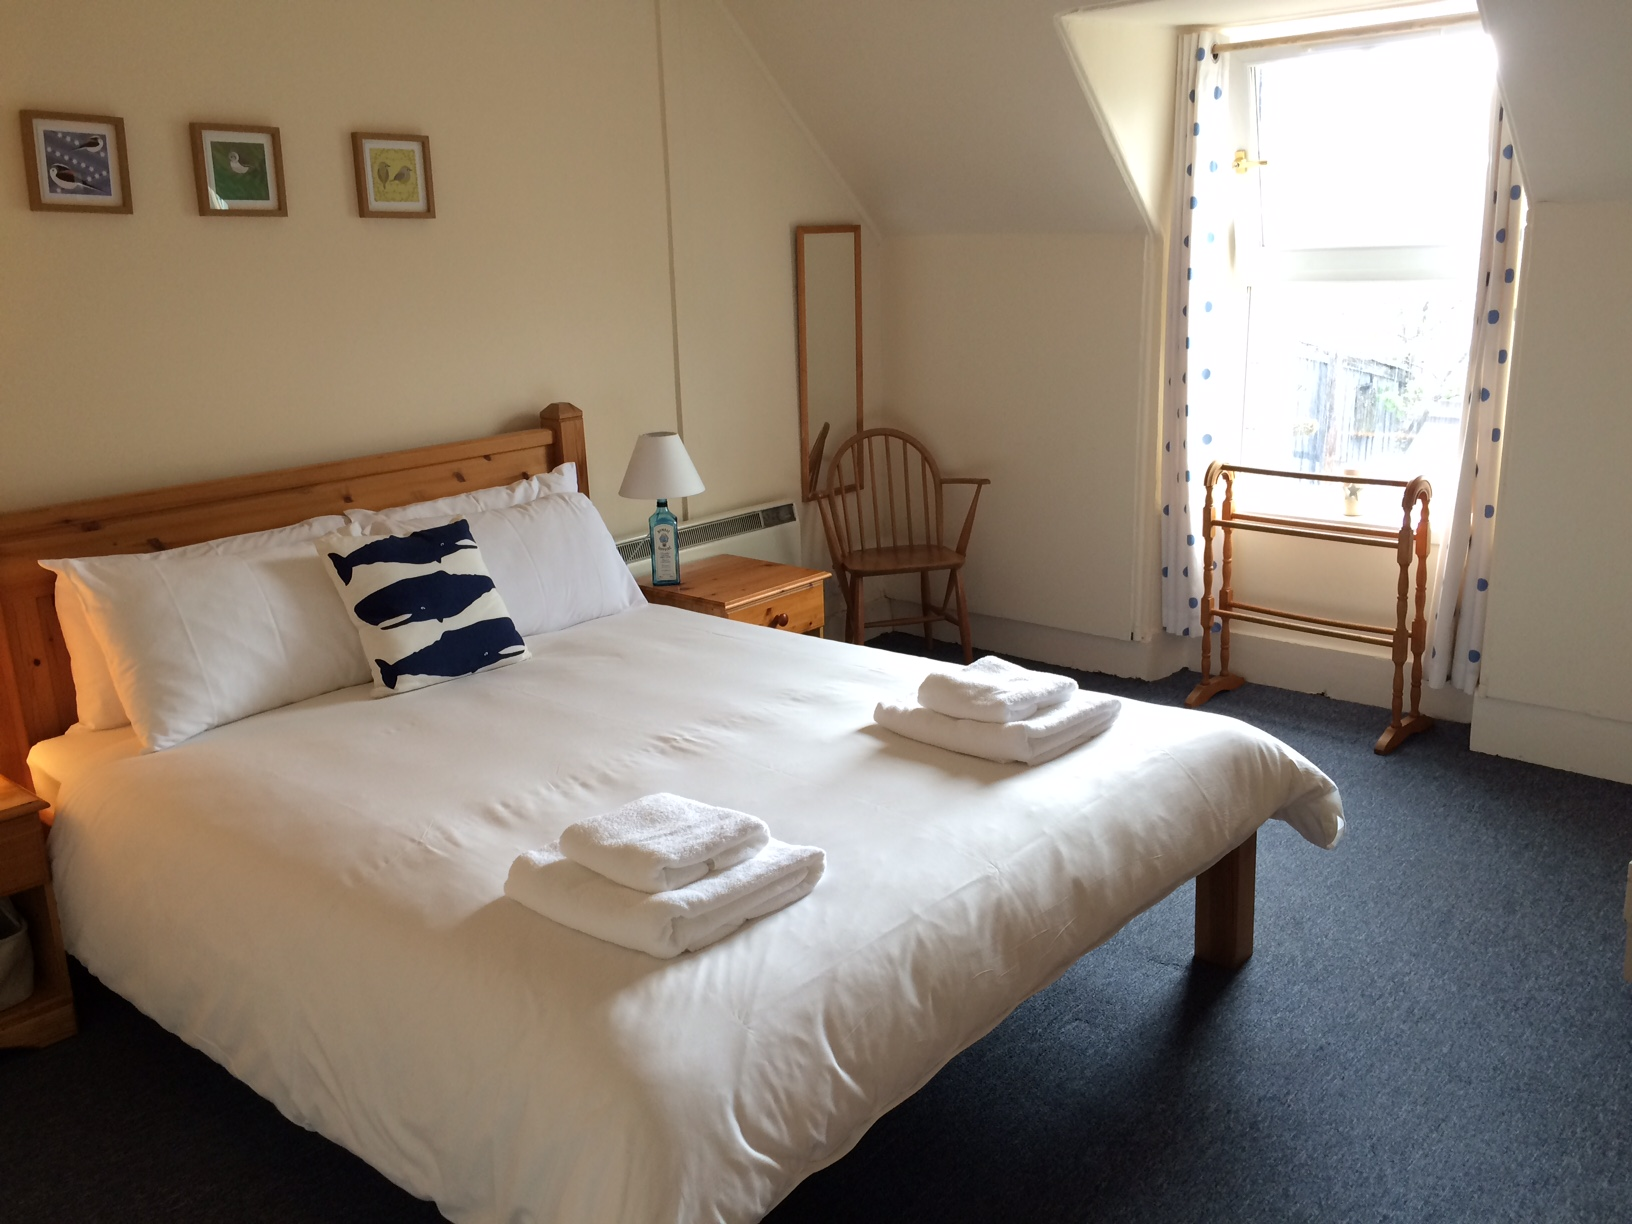 King size bed in bright spacious room